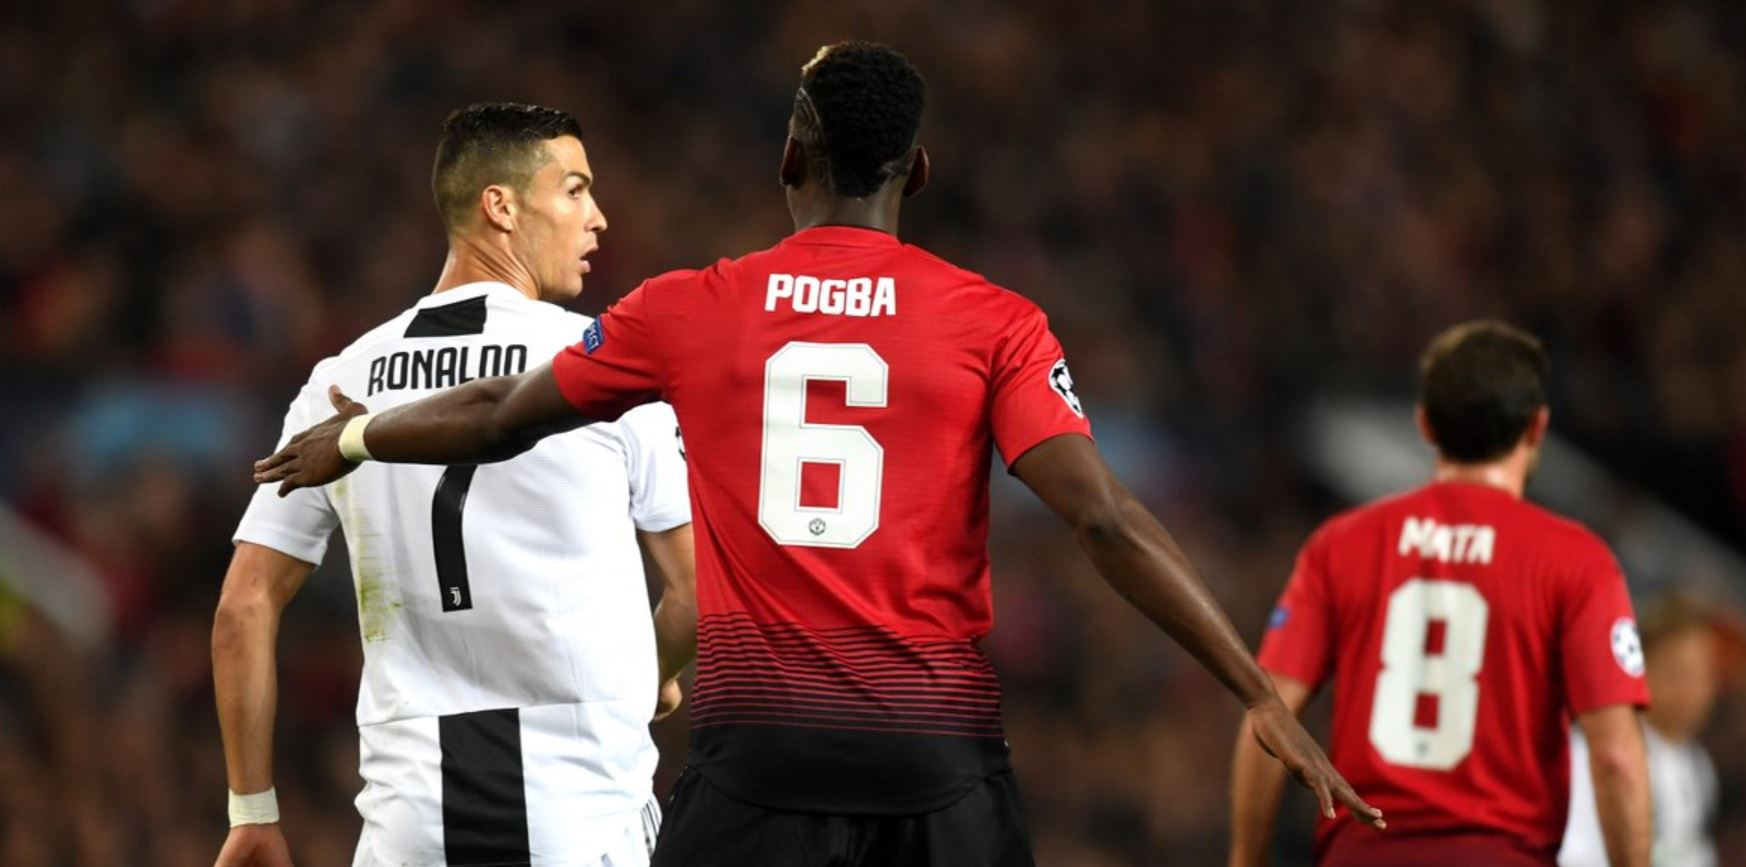 Paul Pogba Cristiano Ronaldo Manchester United Real Madrid